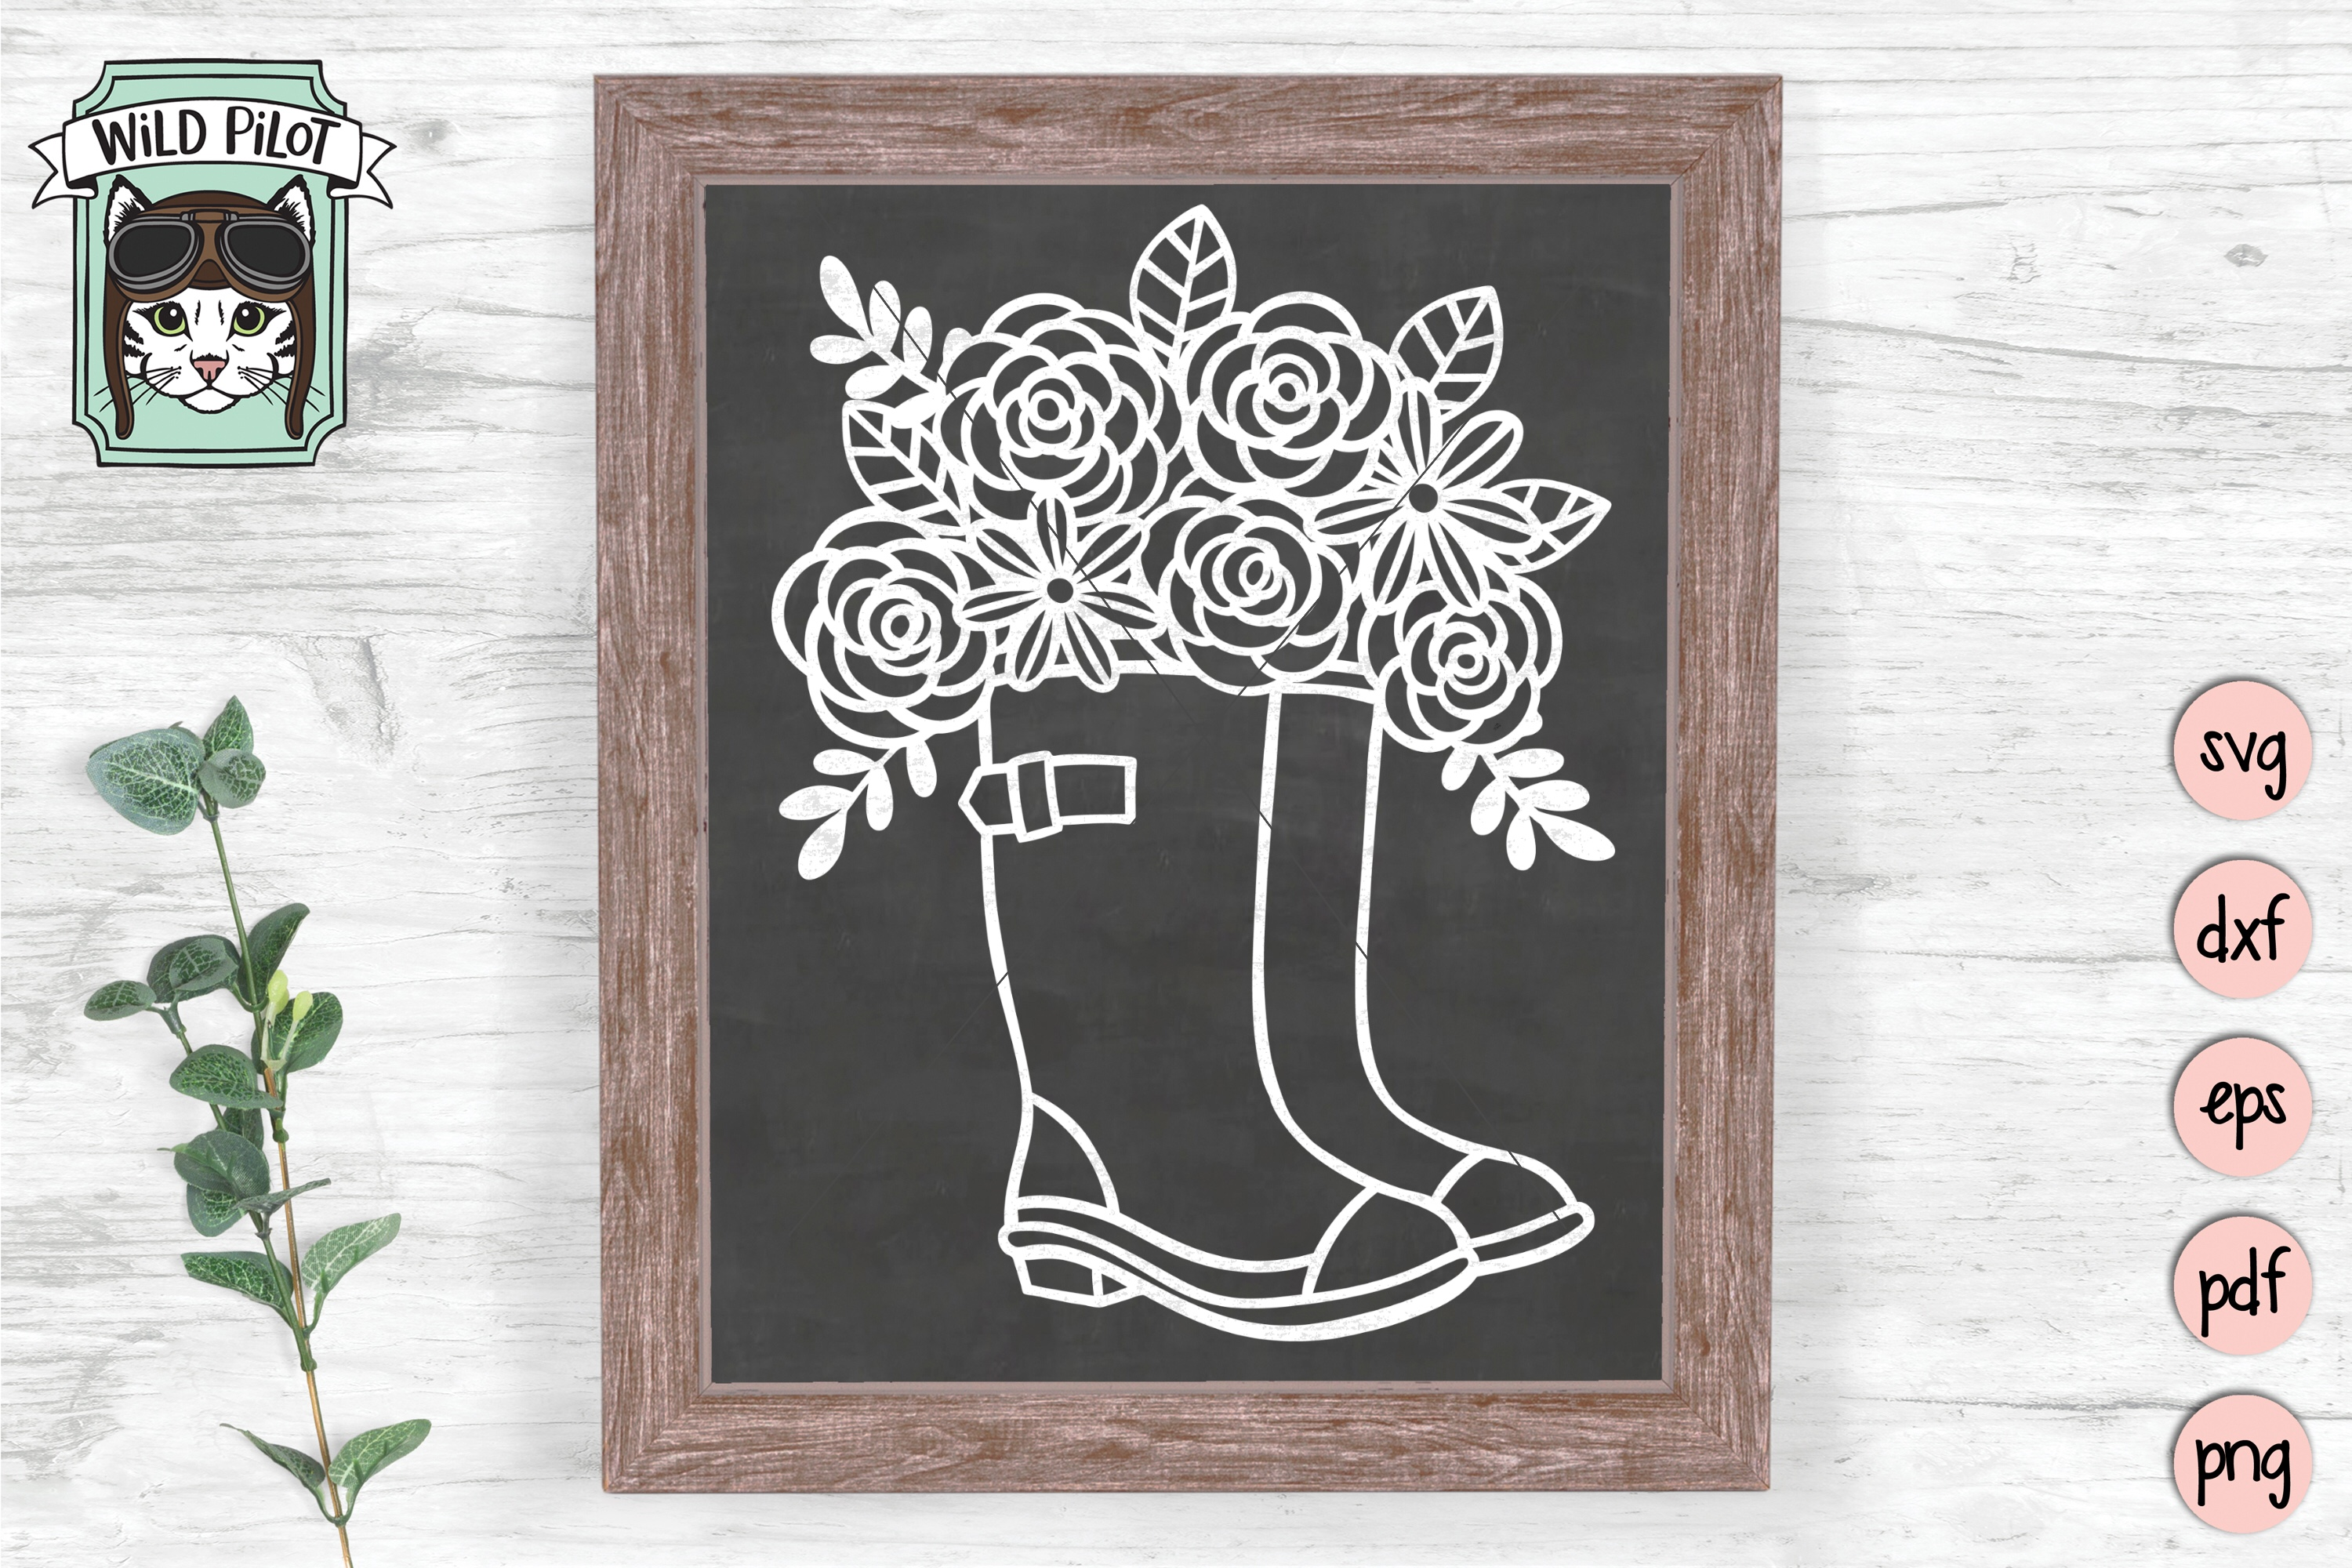 Rain boots svg file, Boots with flowers, Wellies cut file example image 2